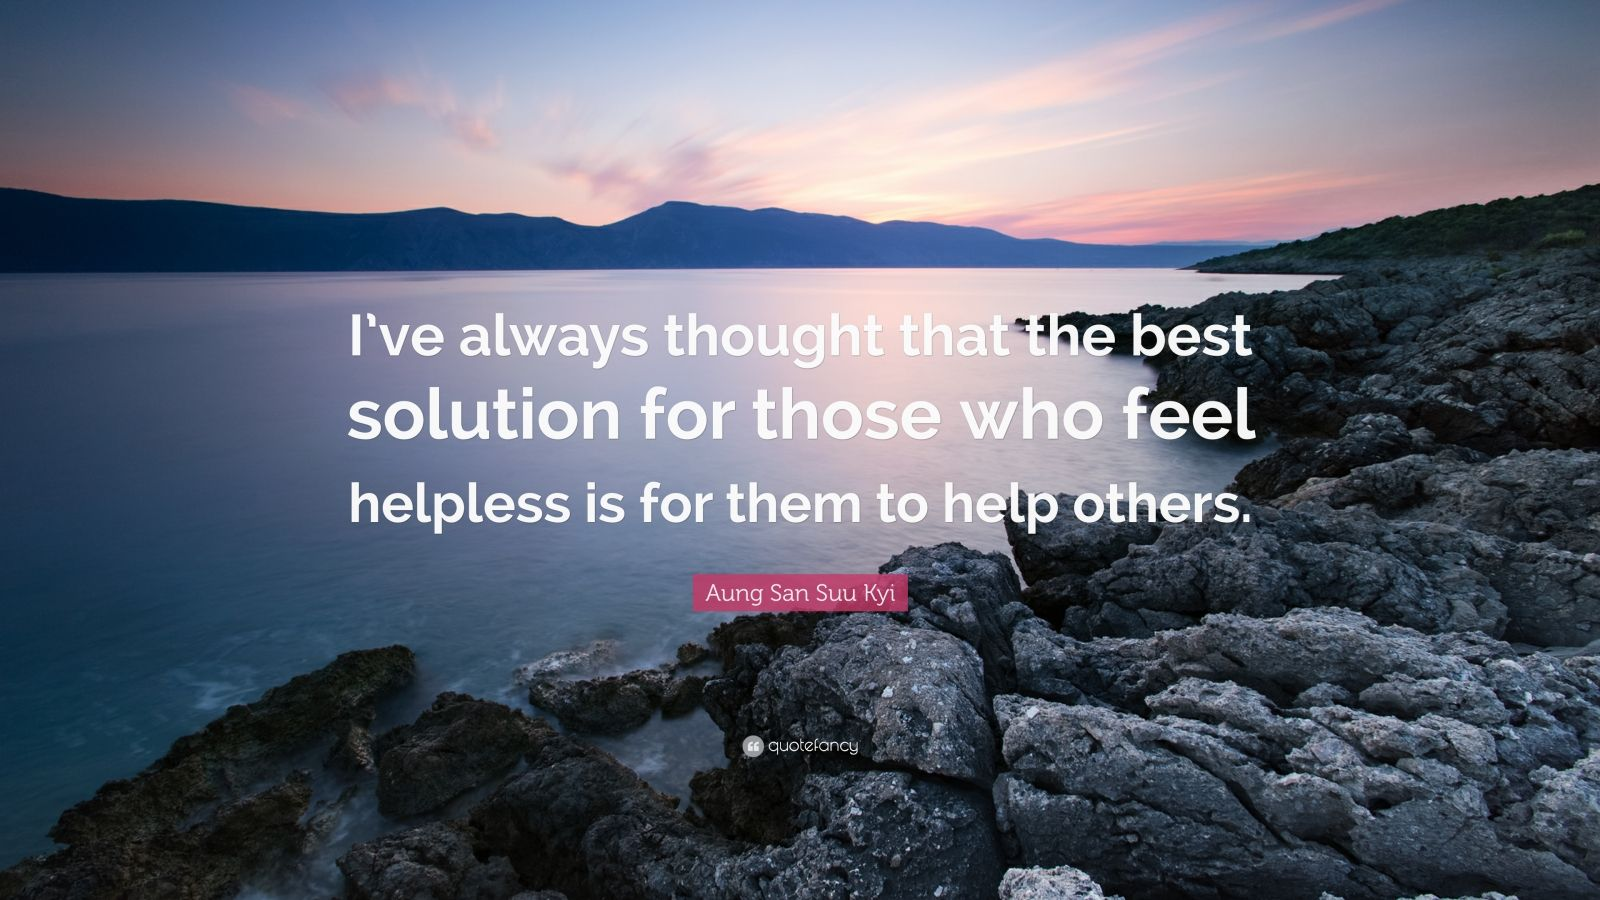 """Aung San Suu Kyi Quote: """"I've always thought that the best solution for those who feel helpless is for them to help others."""""""